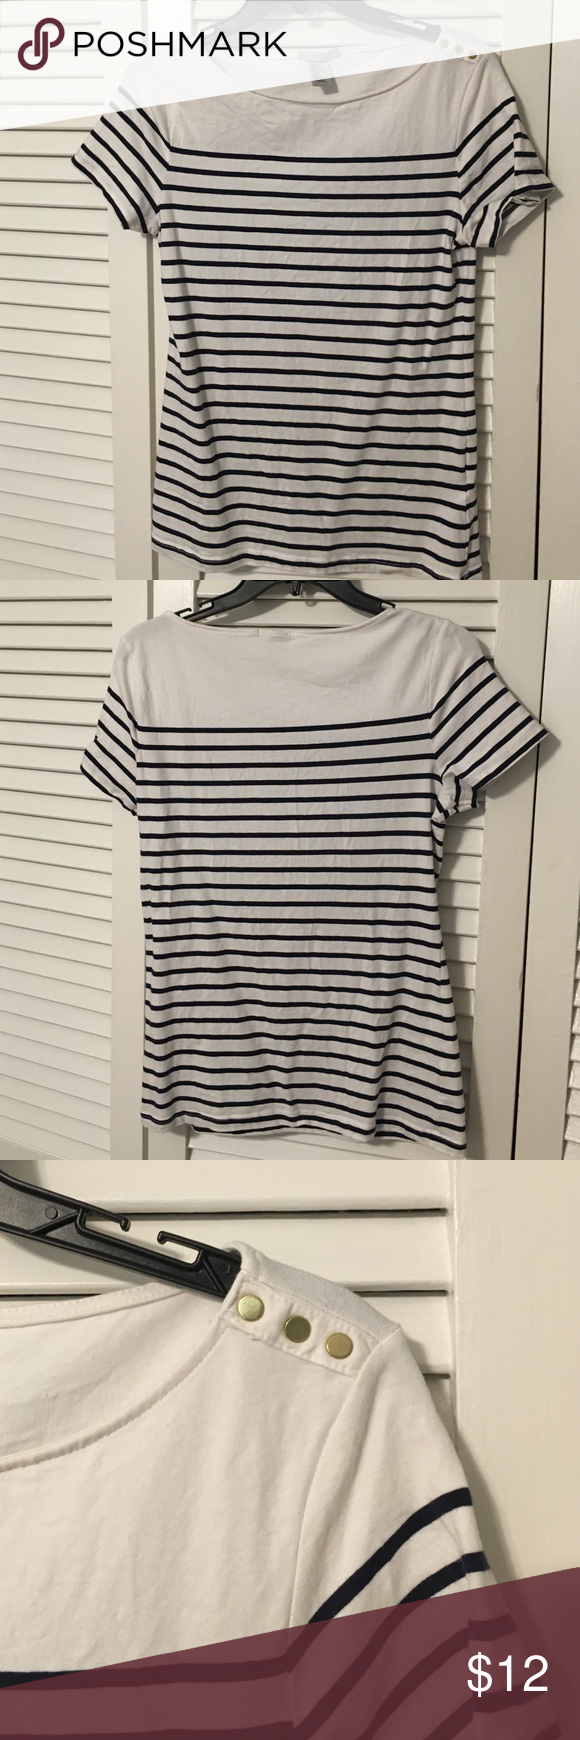 "Navy and white striped tee Navy and white striped tee, with gold ""button"" detailing on the left shoulder. Stretchy/fitted. Like new, worn once H&M Tops Tees - Short Sleeve"